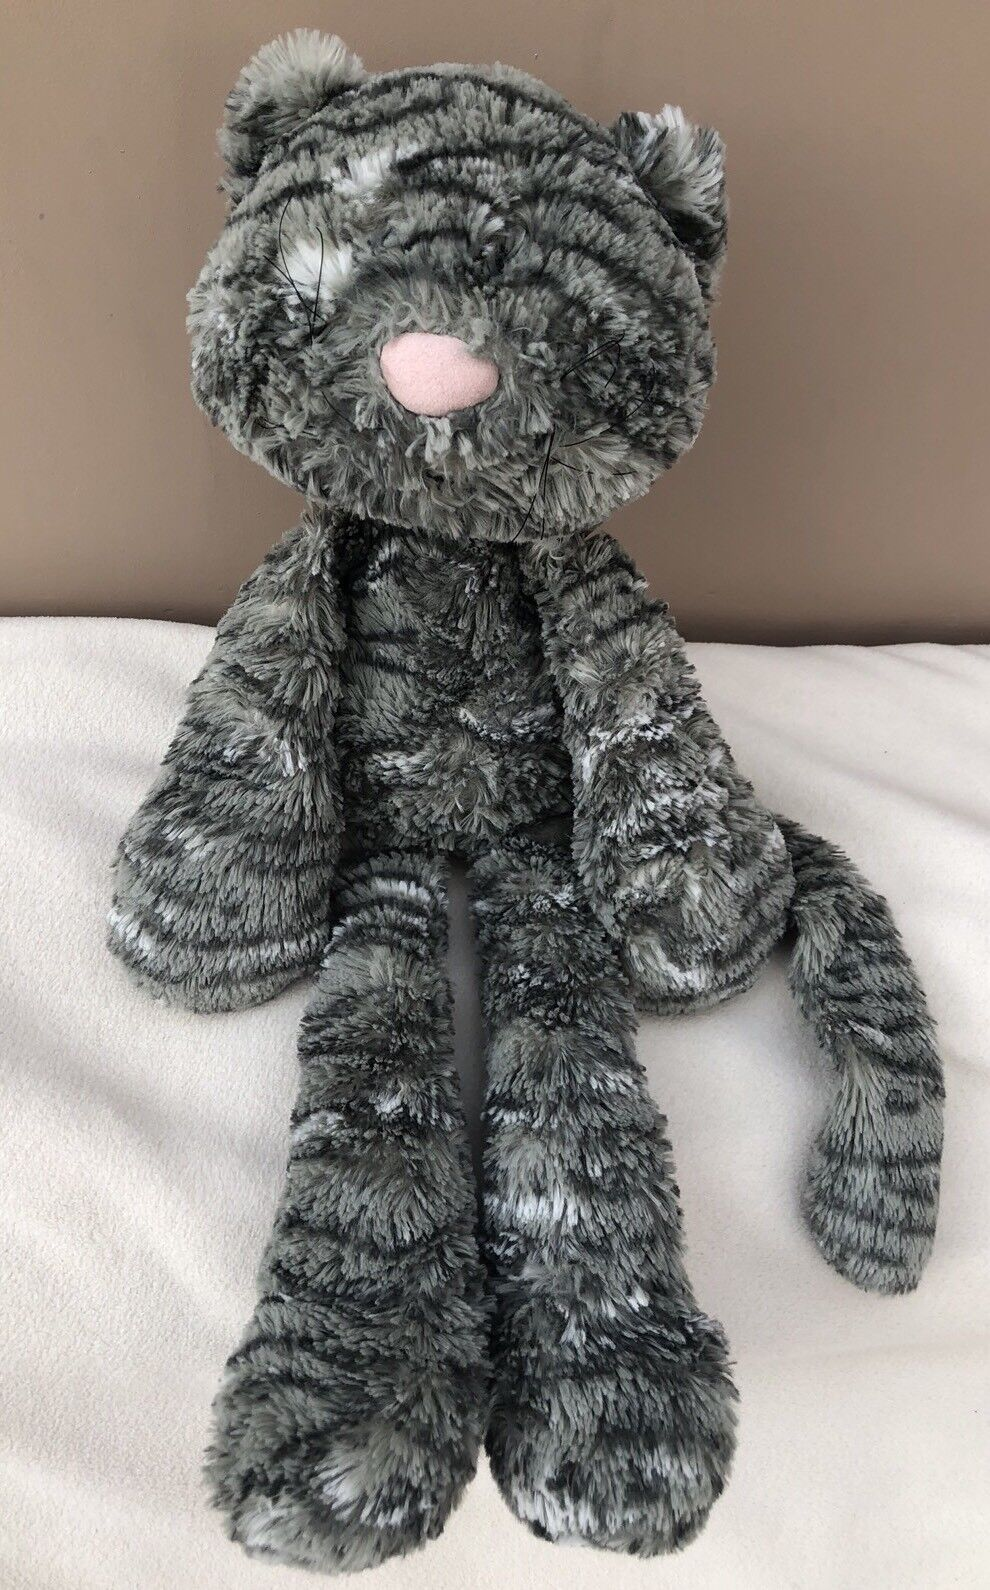 Jellycat Merryday Grey Cat With Whiskers Baby Soft Toy Comforter Rare Retired